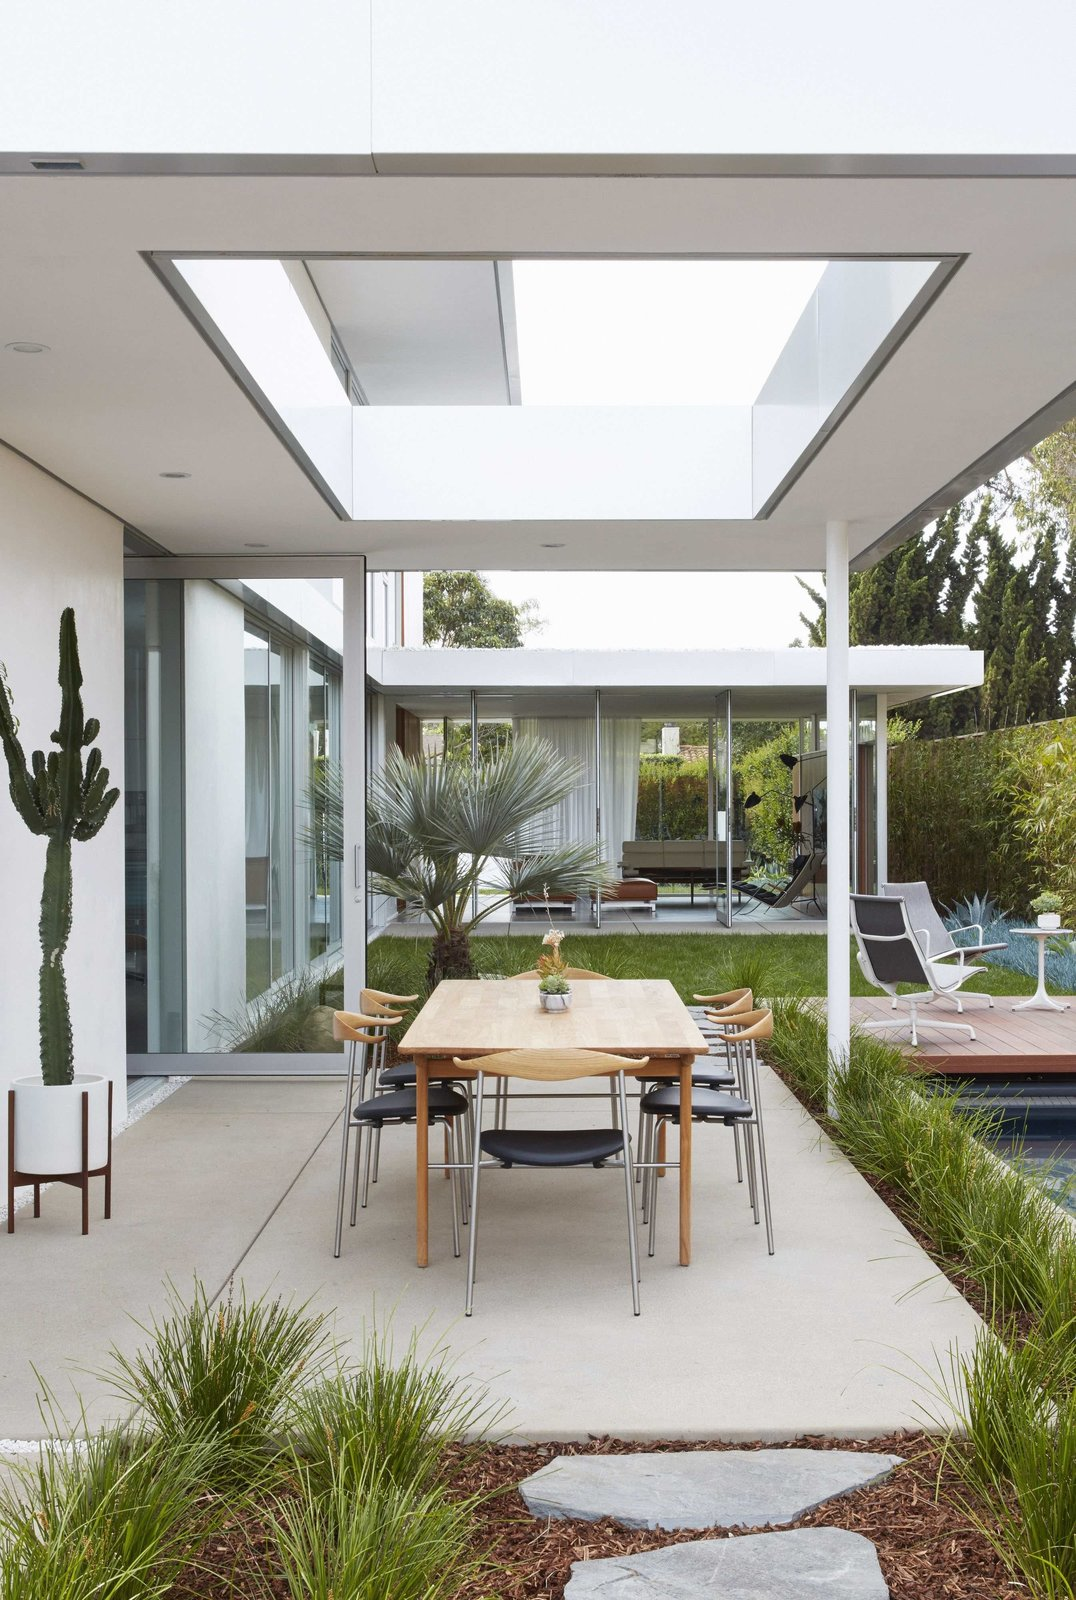 Tagged: Outdoor, Back Yard, Grass, Trees, Gardens, Walkways, Hardscapes, and Concrete Patio, Porch, Deck.  Santa Monica Residence by www.MidcenturyModern.LA